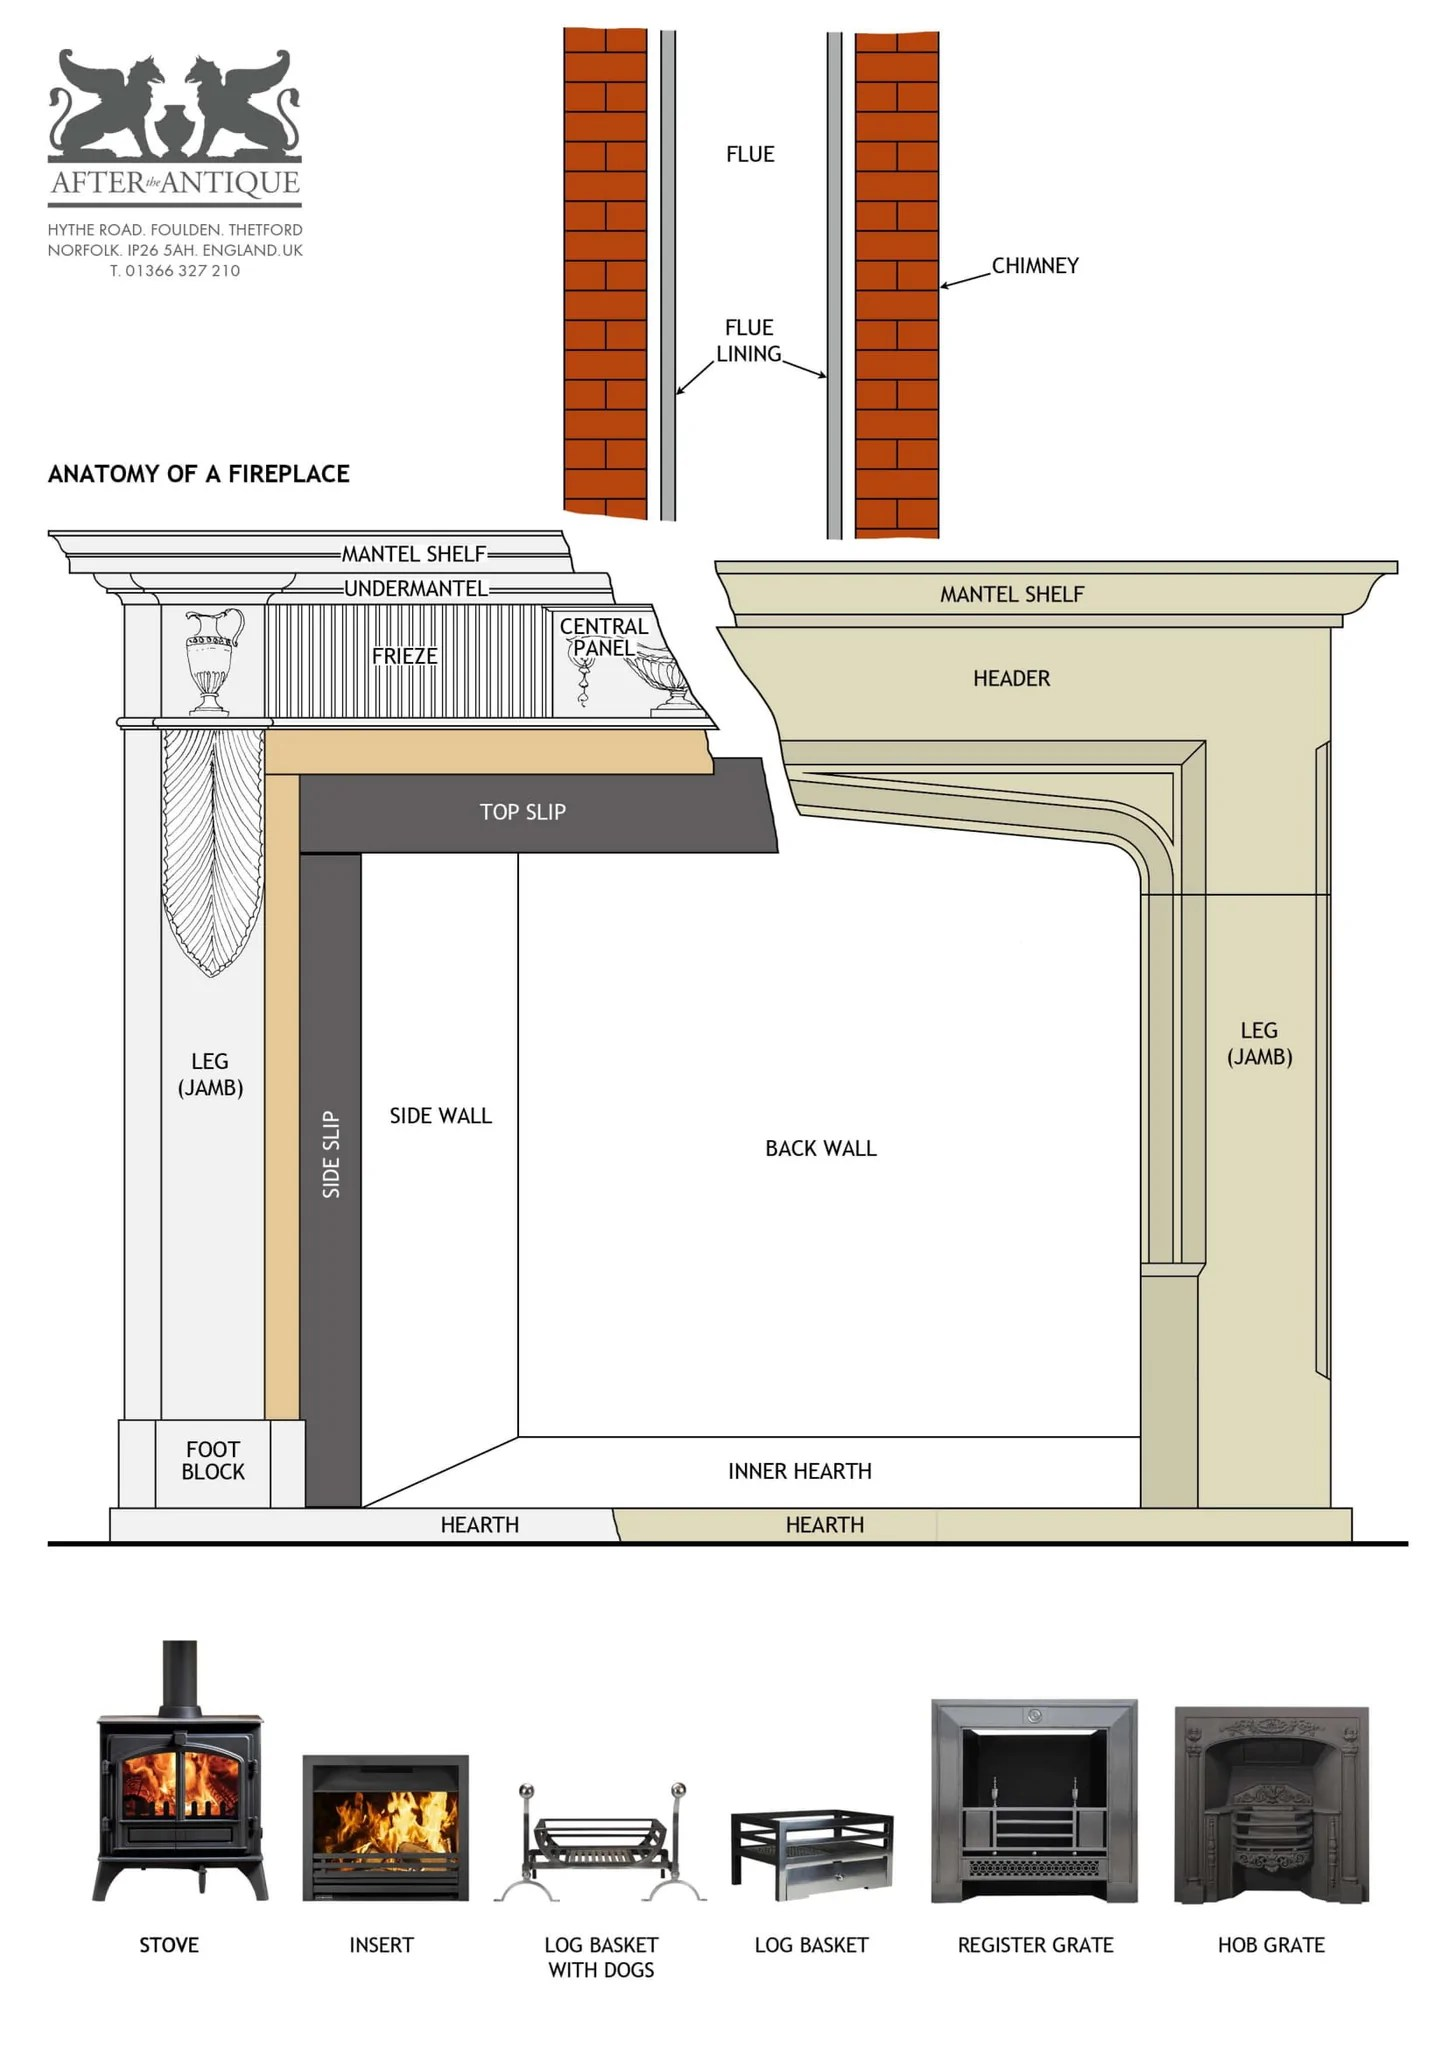 anatomy of a fireplace download [ 1448 x 2048 Pixel ]